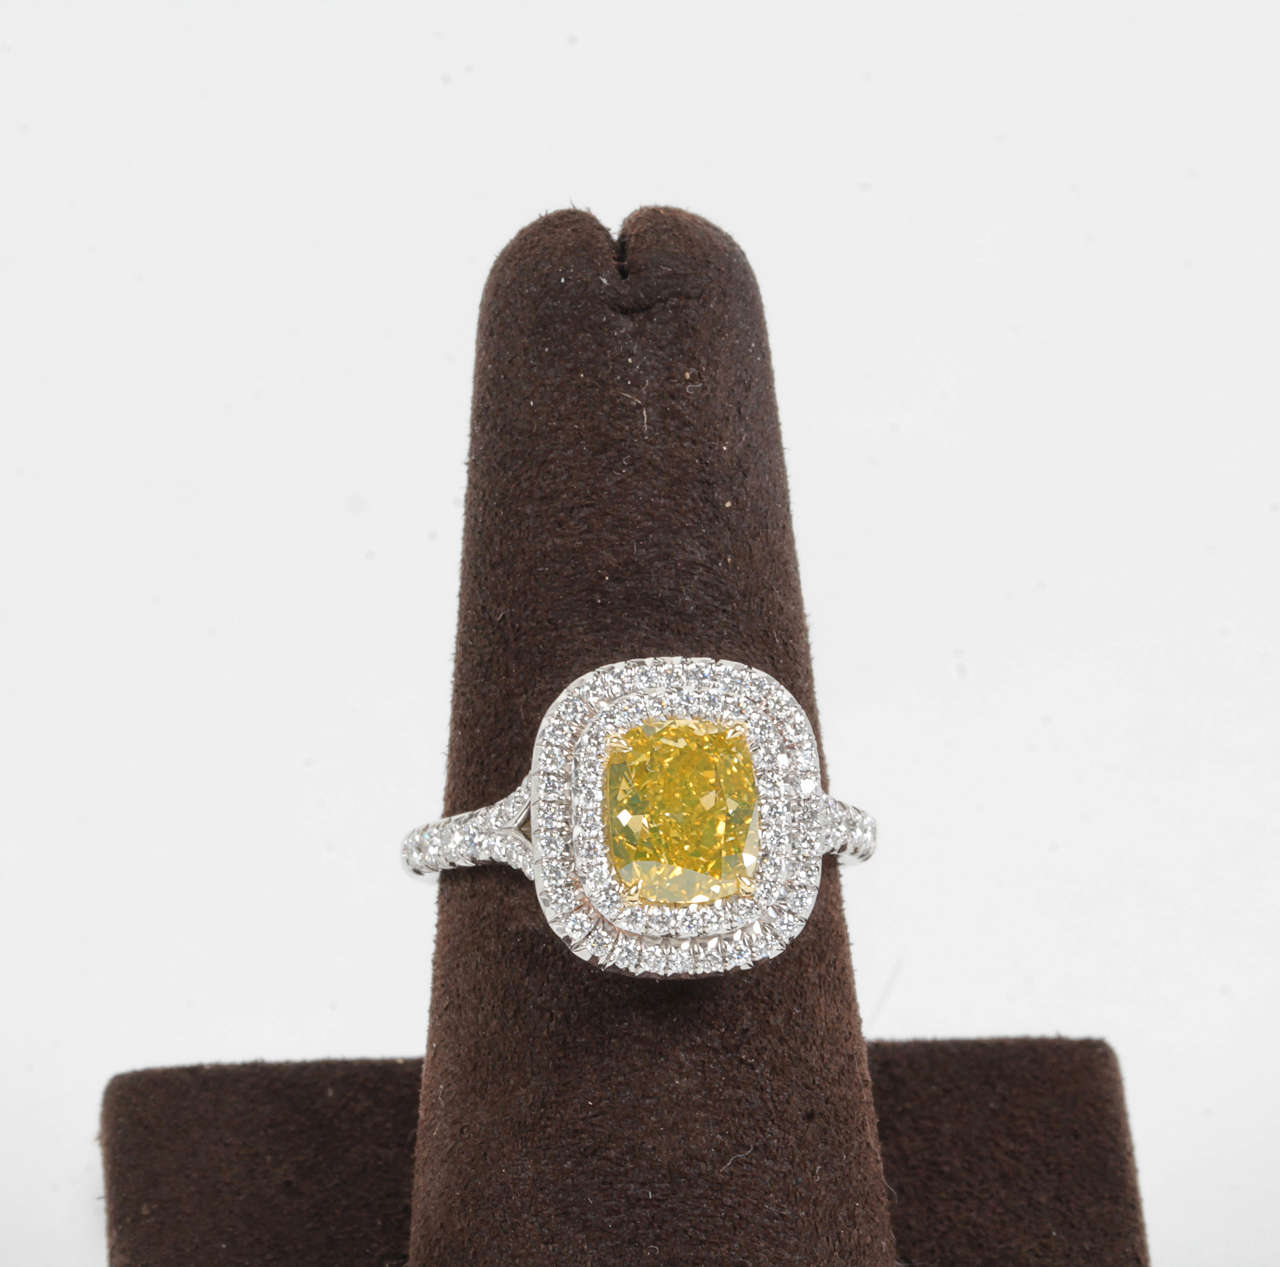 Rare Cushion Cut GIA Certified Vivid Yellow and White Diamond Platinum Ring In New Condition For Sale In New York, NY